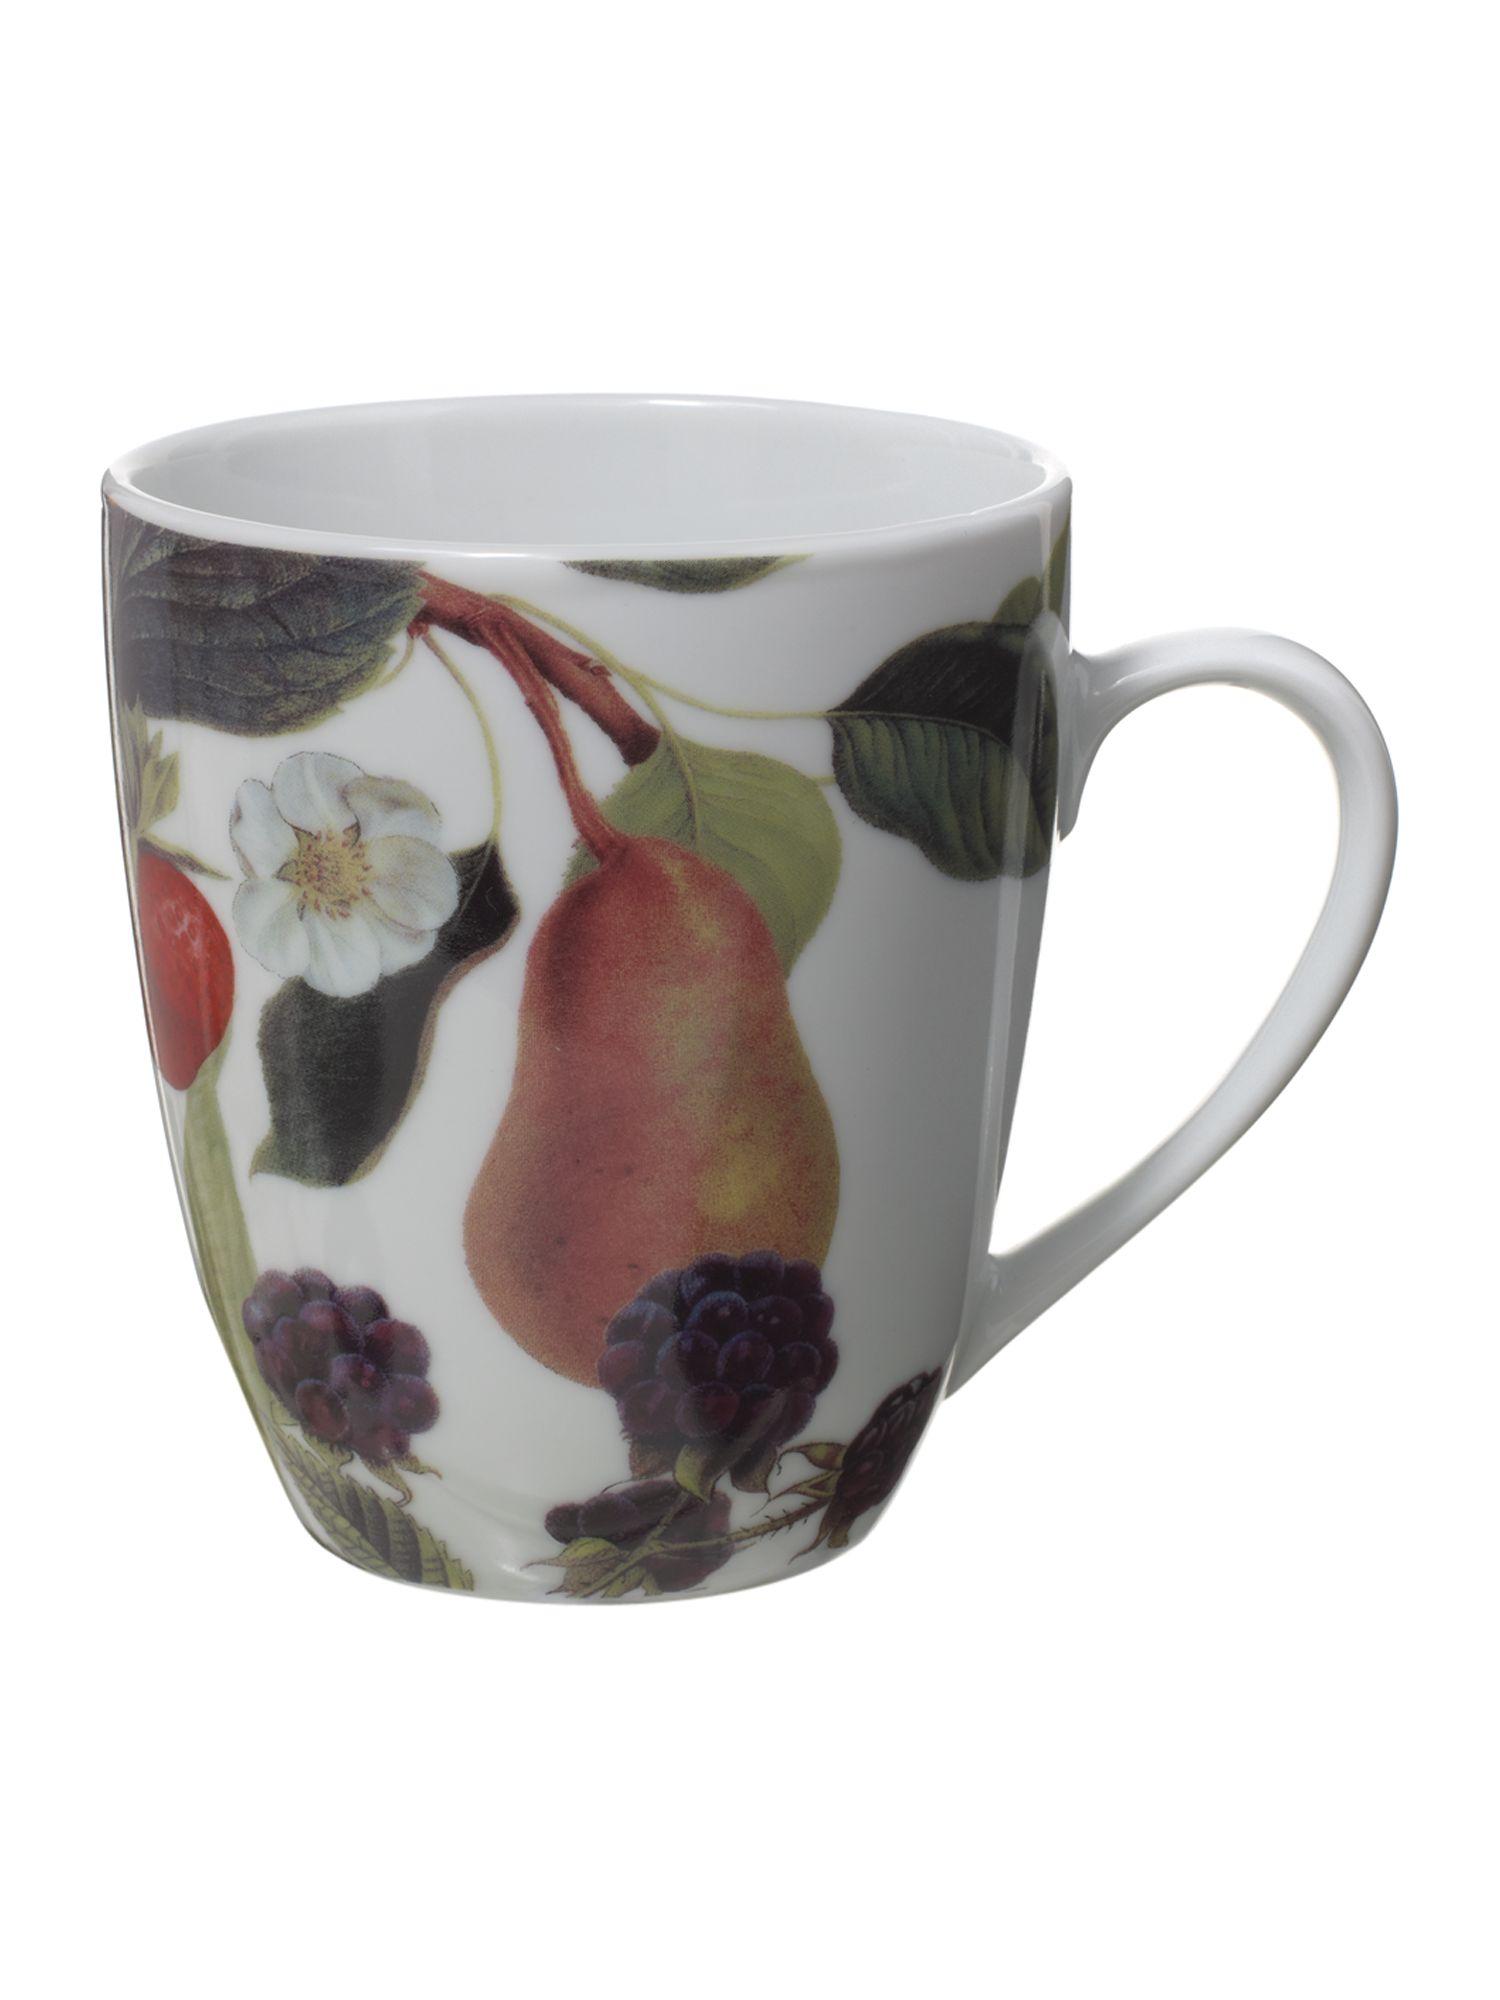 Botanical fruits mug